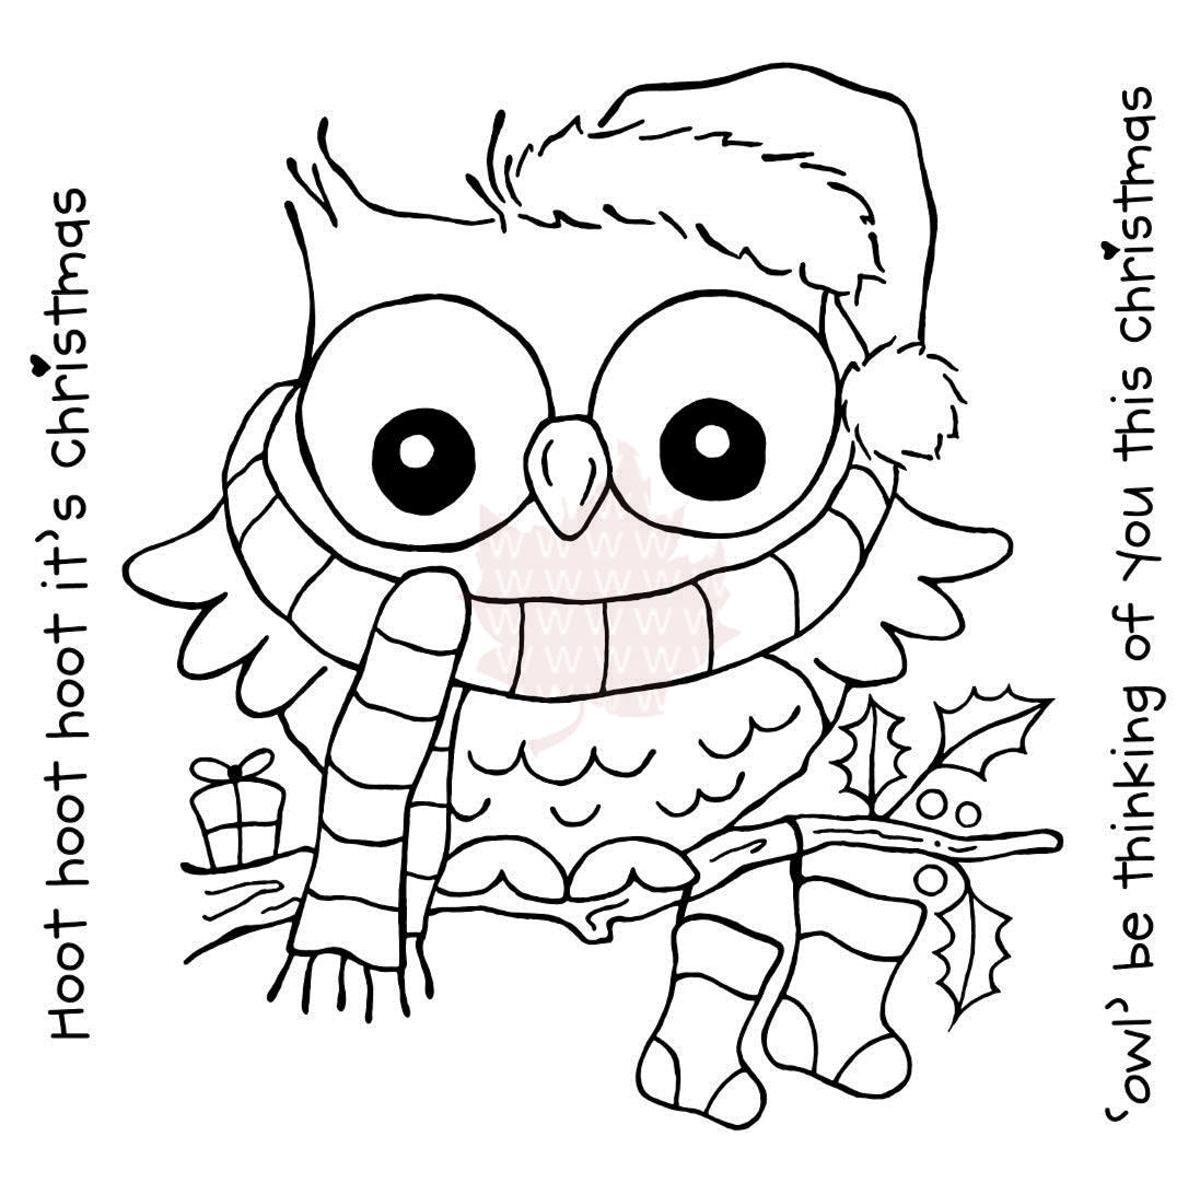 cute baby animal coloring pages owls coloring pages Owl Coloring Pages Christmas Color by Number  Christmas Owl Coloring Page